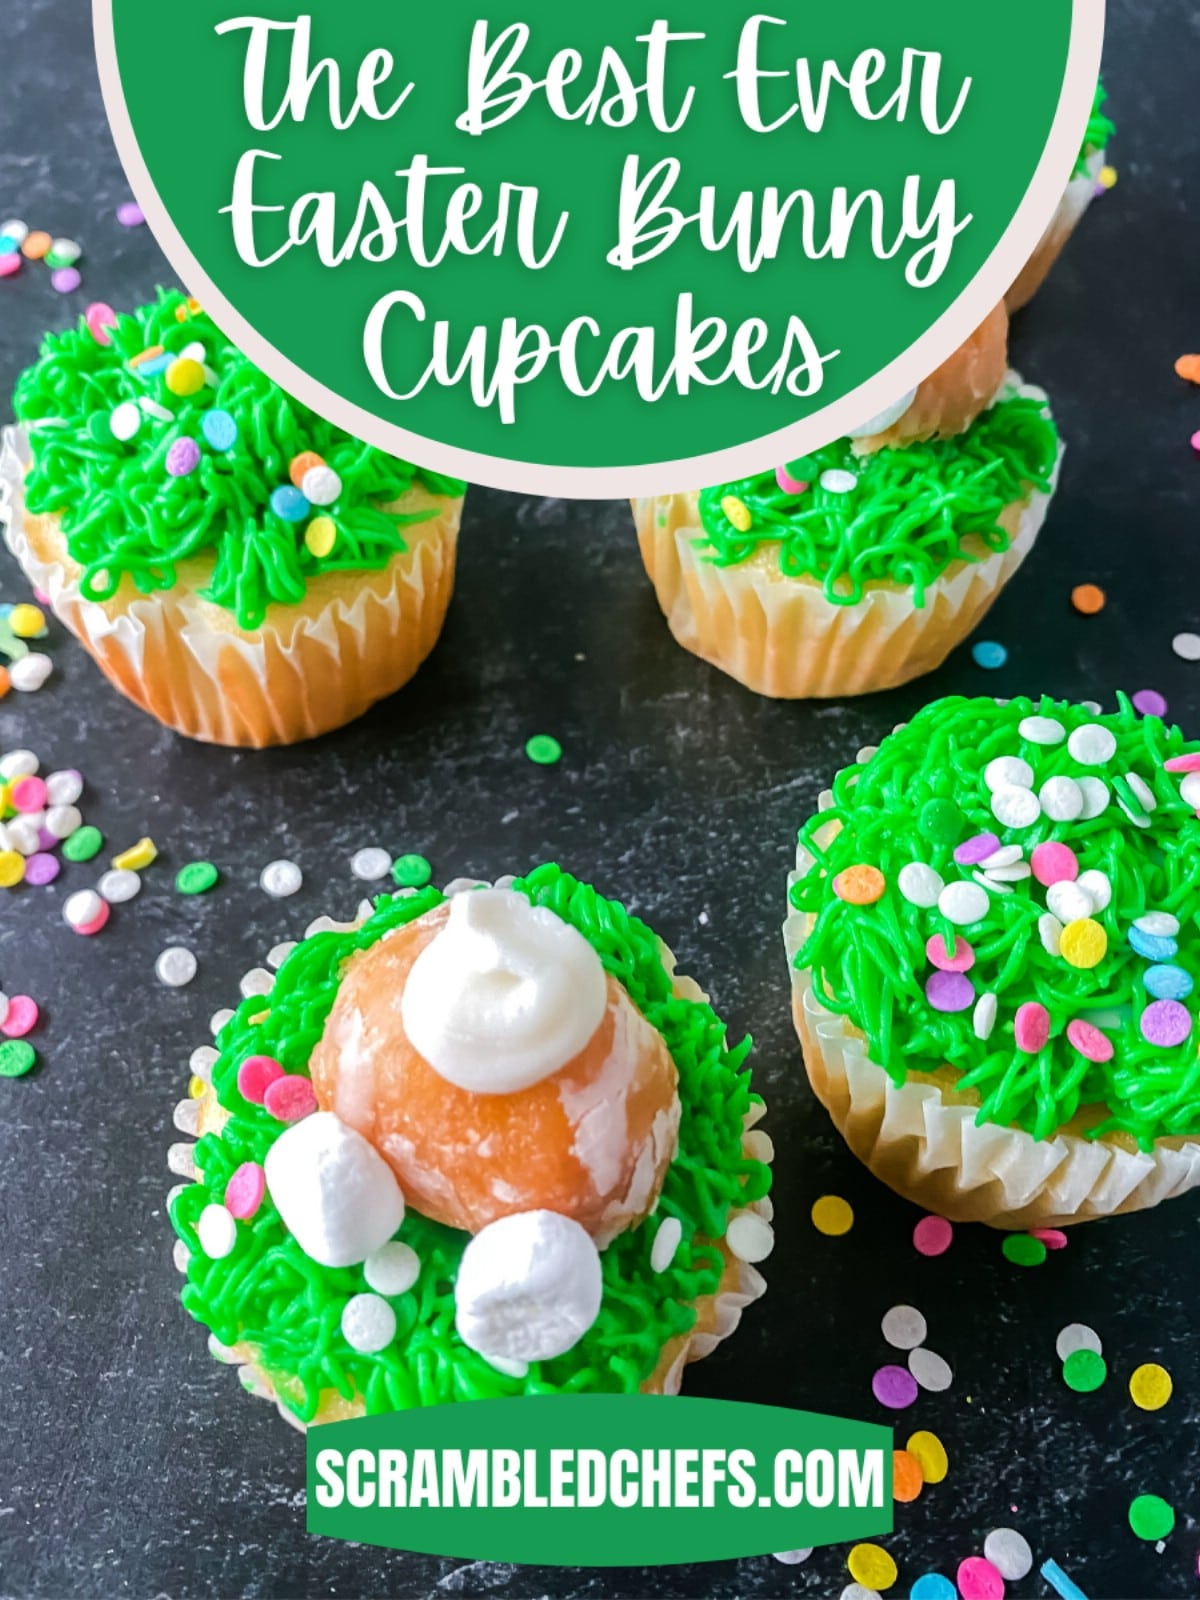 Cupcakes on table pinterest image with green banner that says the best ever easter bunny cupcakes